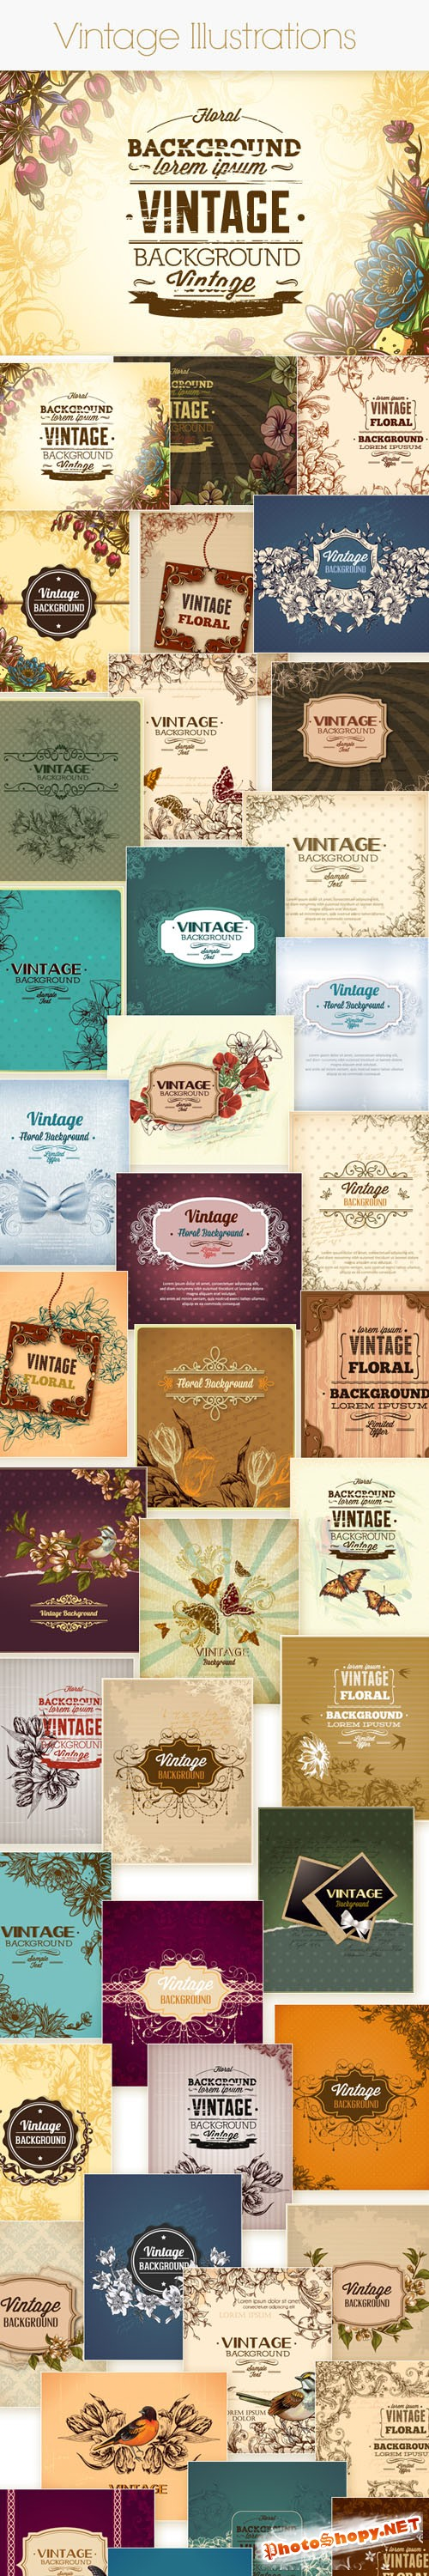 50 Vintage Floral Vector Illustrations